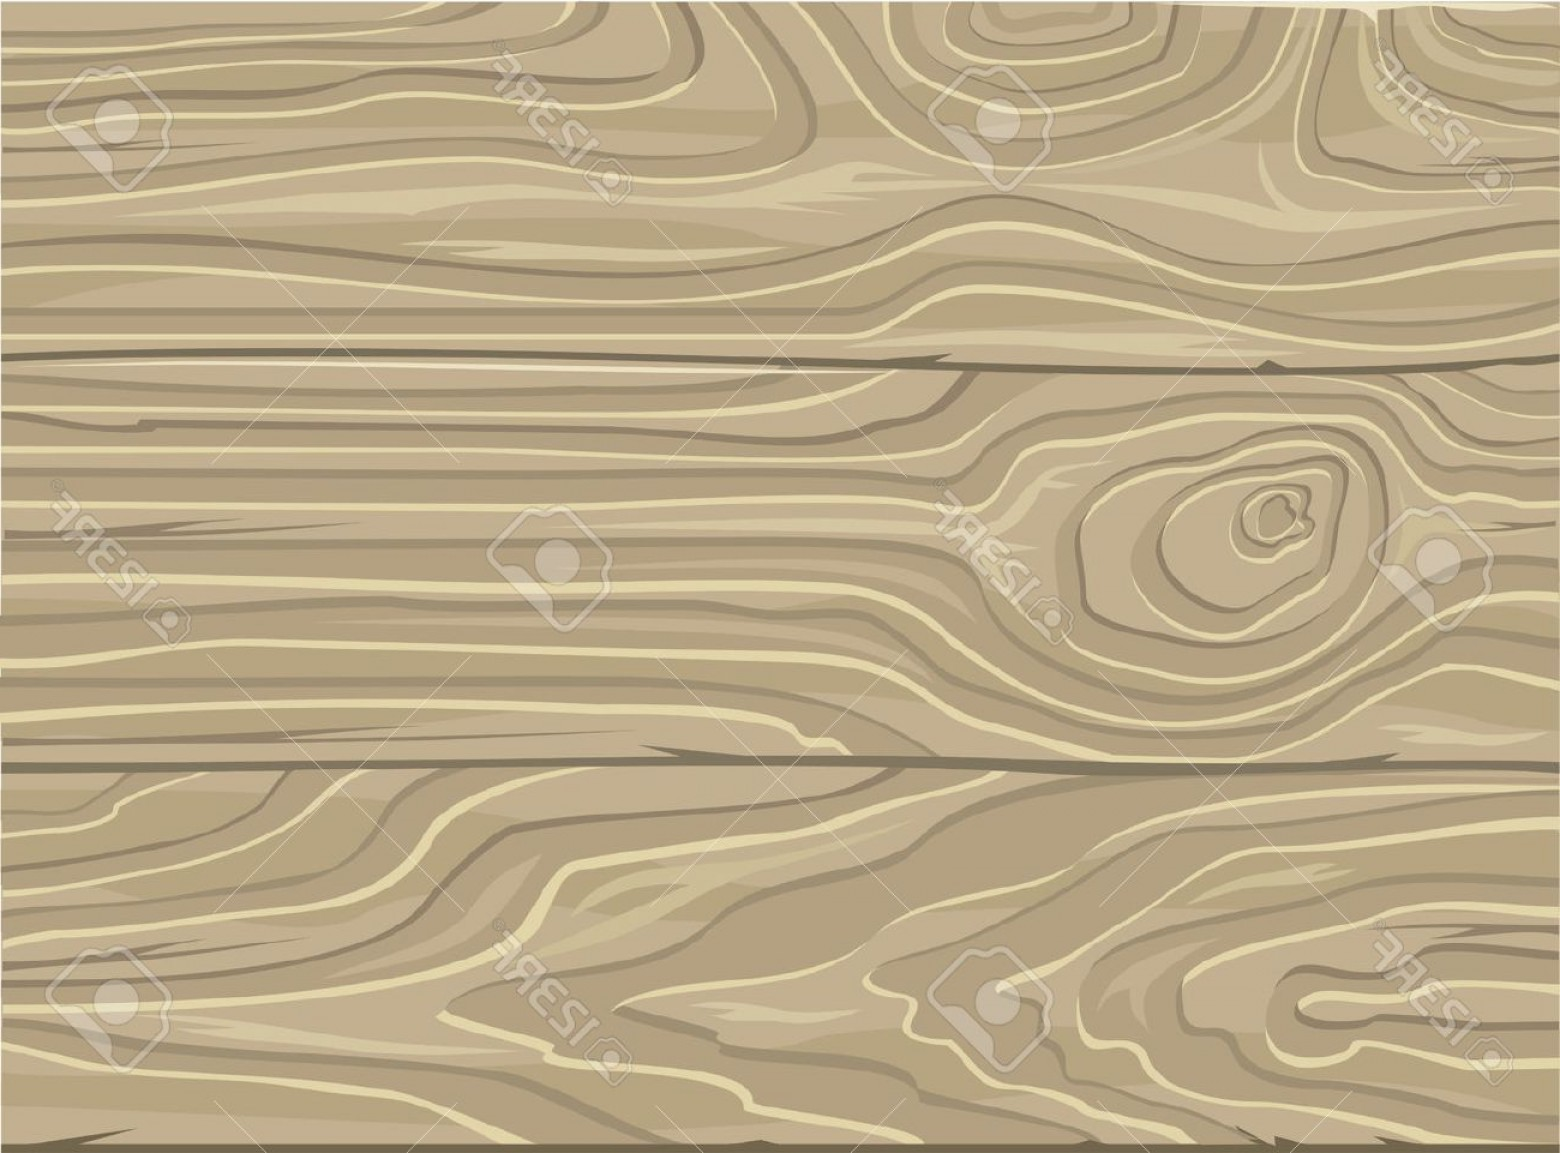 Wood Grain Texture Vector: Photostock Vector Natural Wooden Background Wood Texture Striped Timber Desk Wooden Grain Plank Grey Boards For Autumn